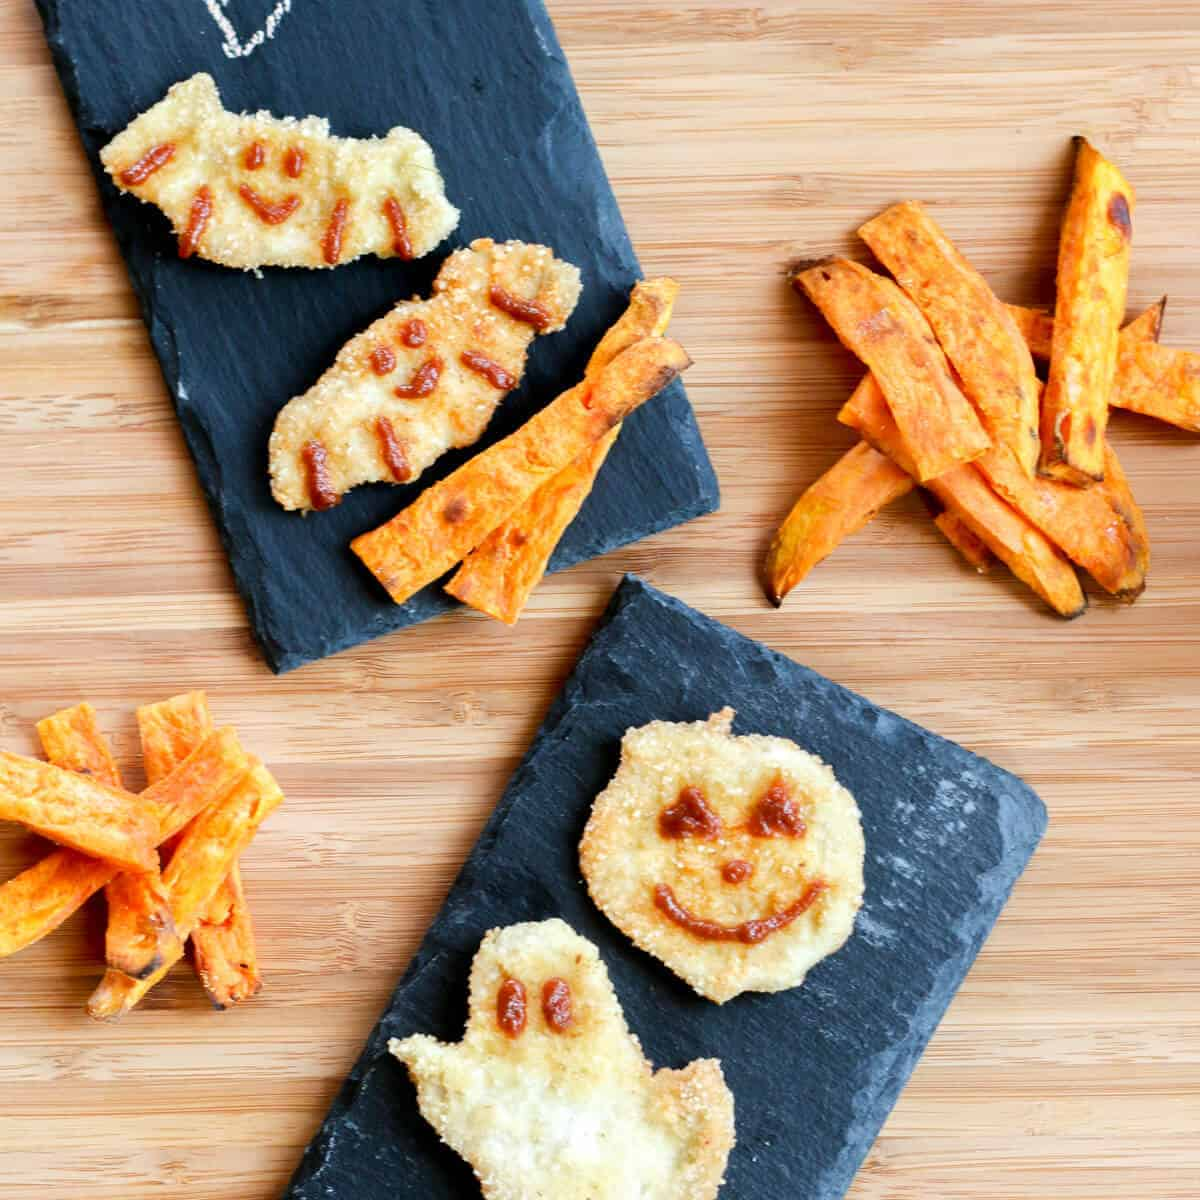 Halloween chicken nuggets shaped like ghosts, pumpkins, and bats, decorated with BBQ sauce and served with sweet potato fries.